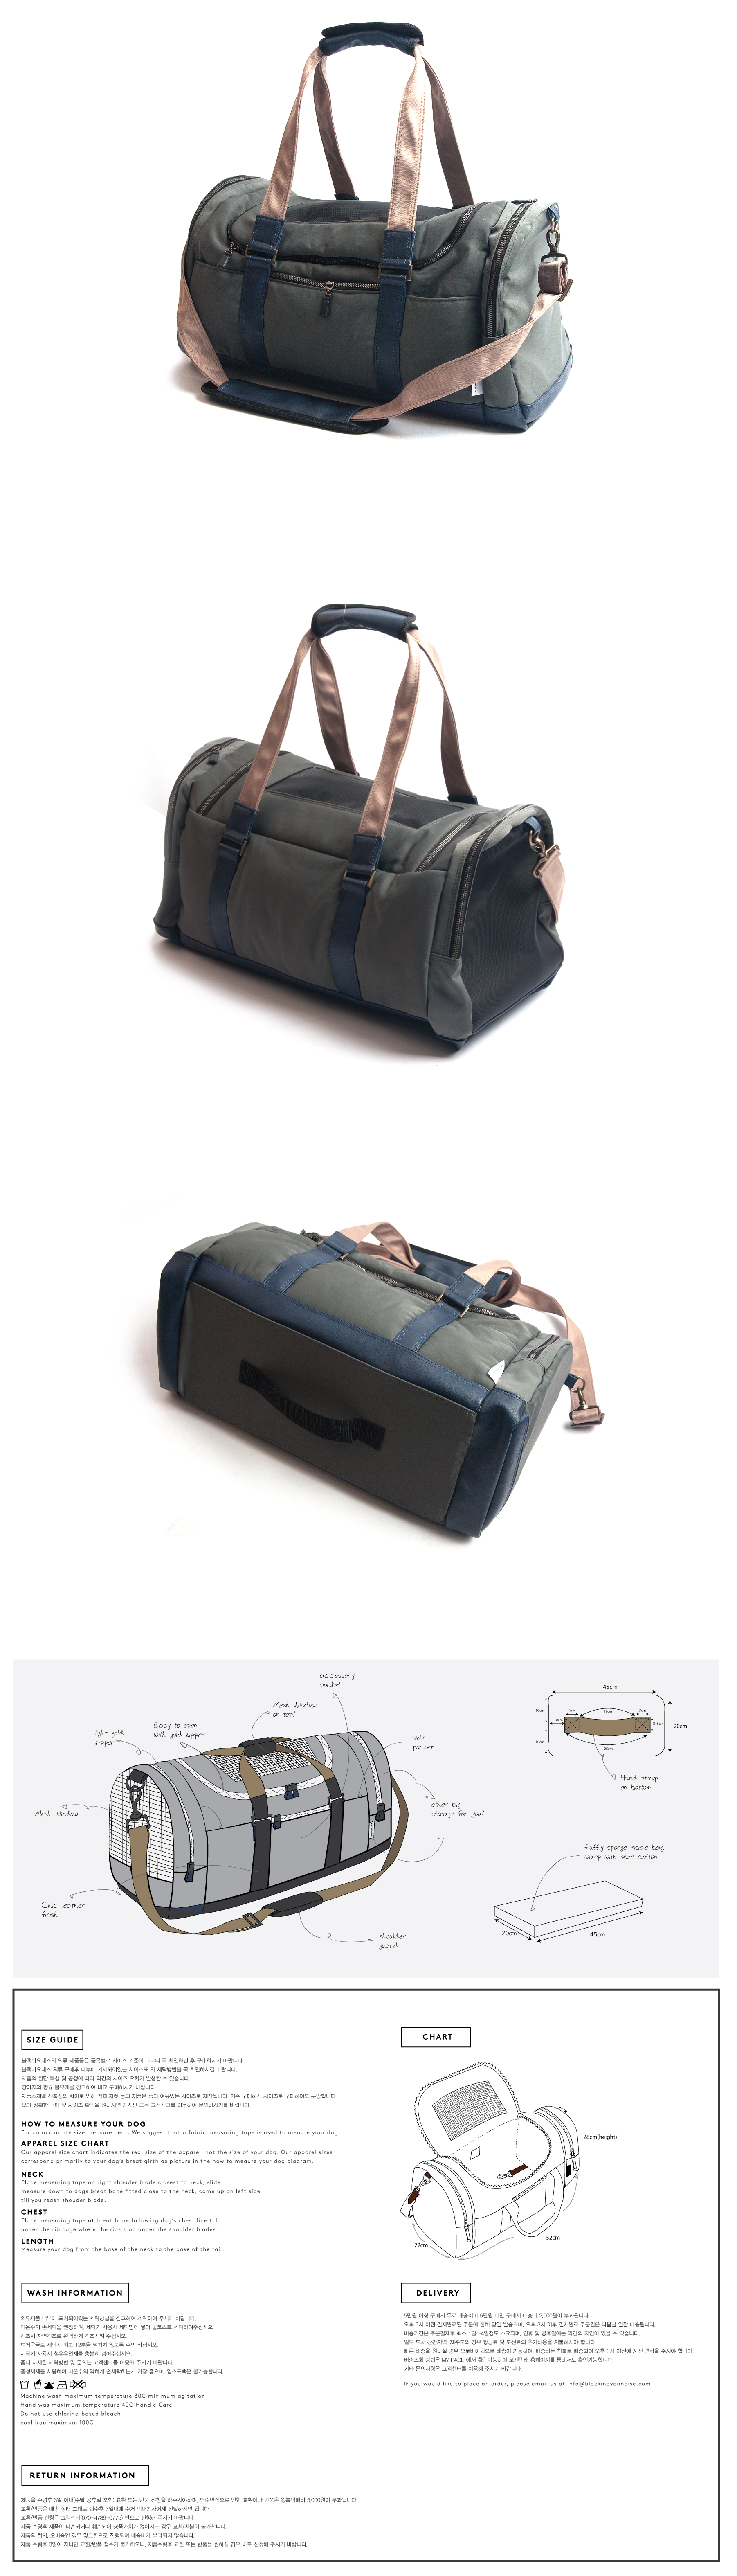 Dog Travel Carrier by blackmayonnaise looks just like a stylish duffle bag, and provides your eloved pet with a smooth and comfortable ride wherever you go. A large U-shaped top opening with zipper, and left side as well. Provide number of storage pockets for all of your pet's accessories. #블랙마요네즈#blackmayonnaise#puppy#dog#pet#bestfriends #designfordogs#dogstyling#dogsworld #dogslife #ilovemydog#dogshop